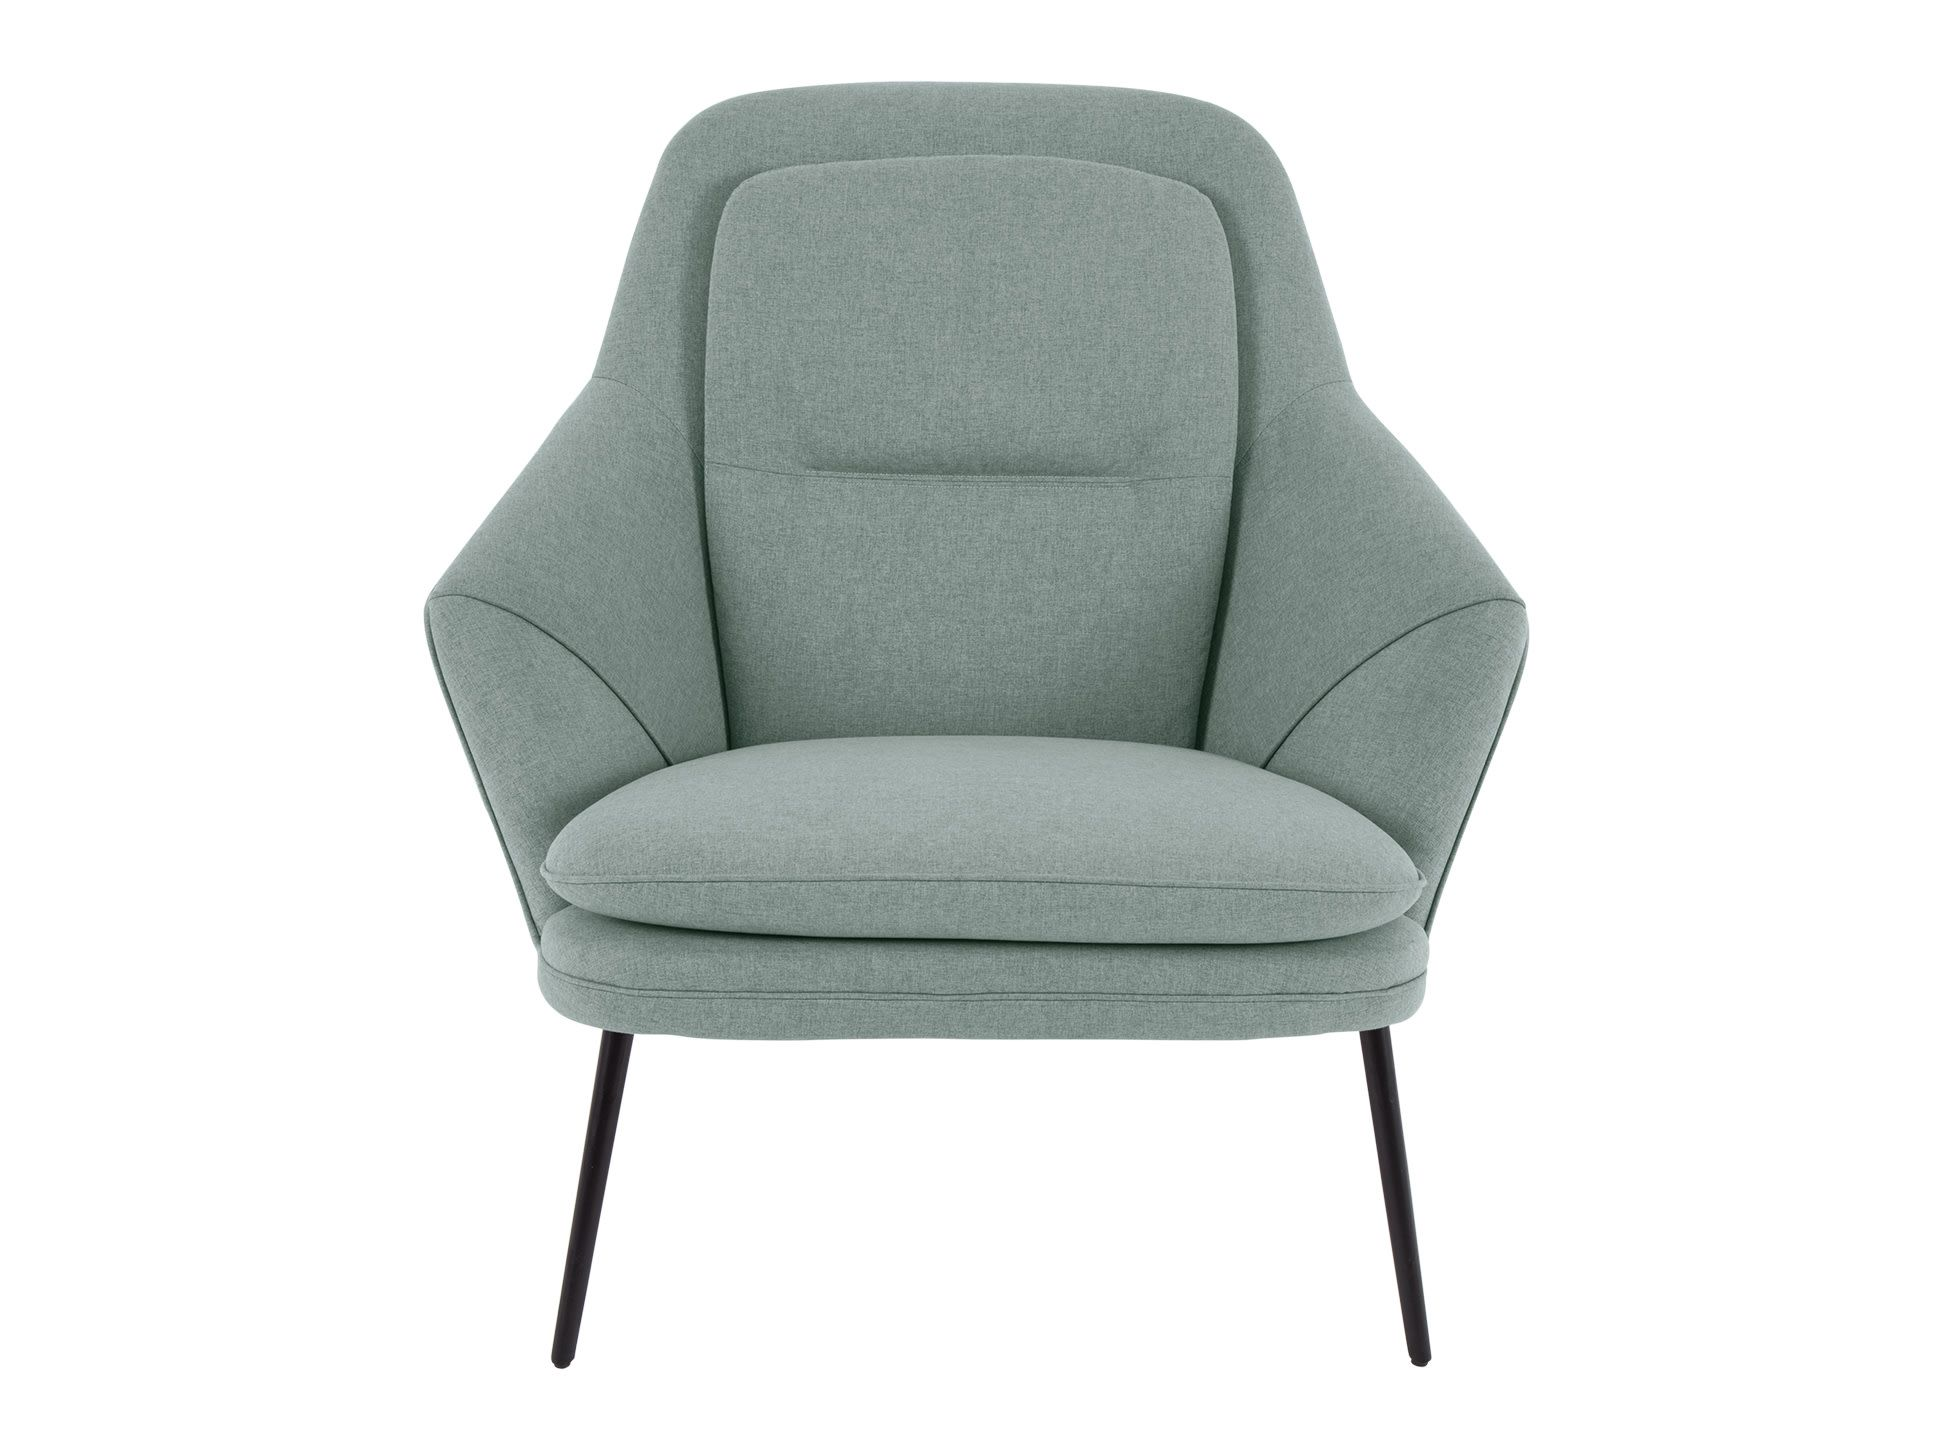 Best Vence Accent Chair Aqua Grey Chair Accent Chairs Armchair 400 x 300